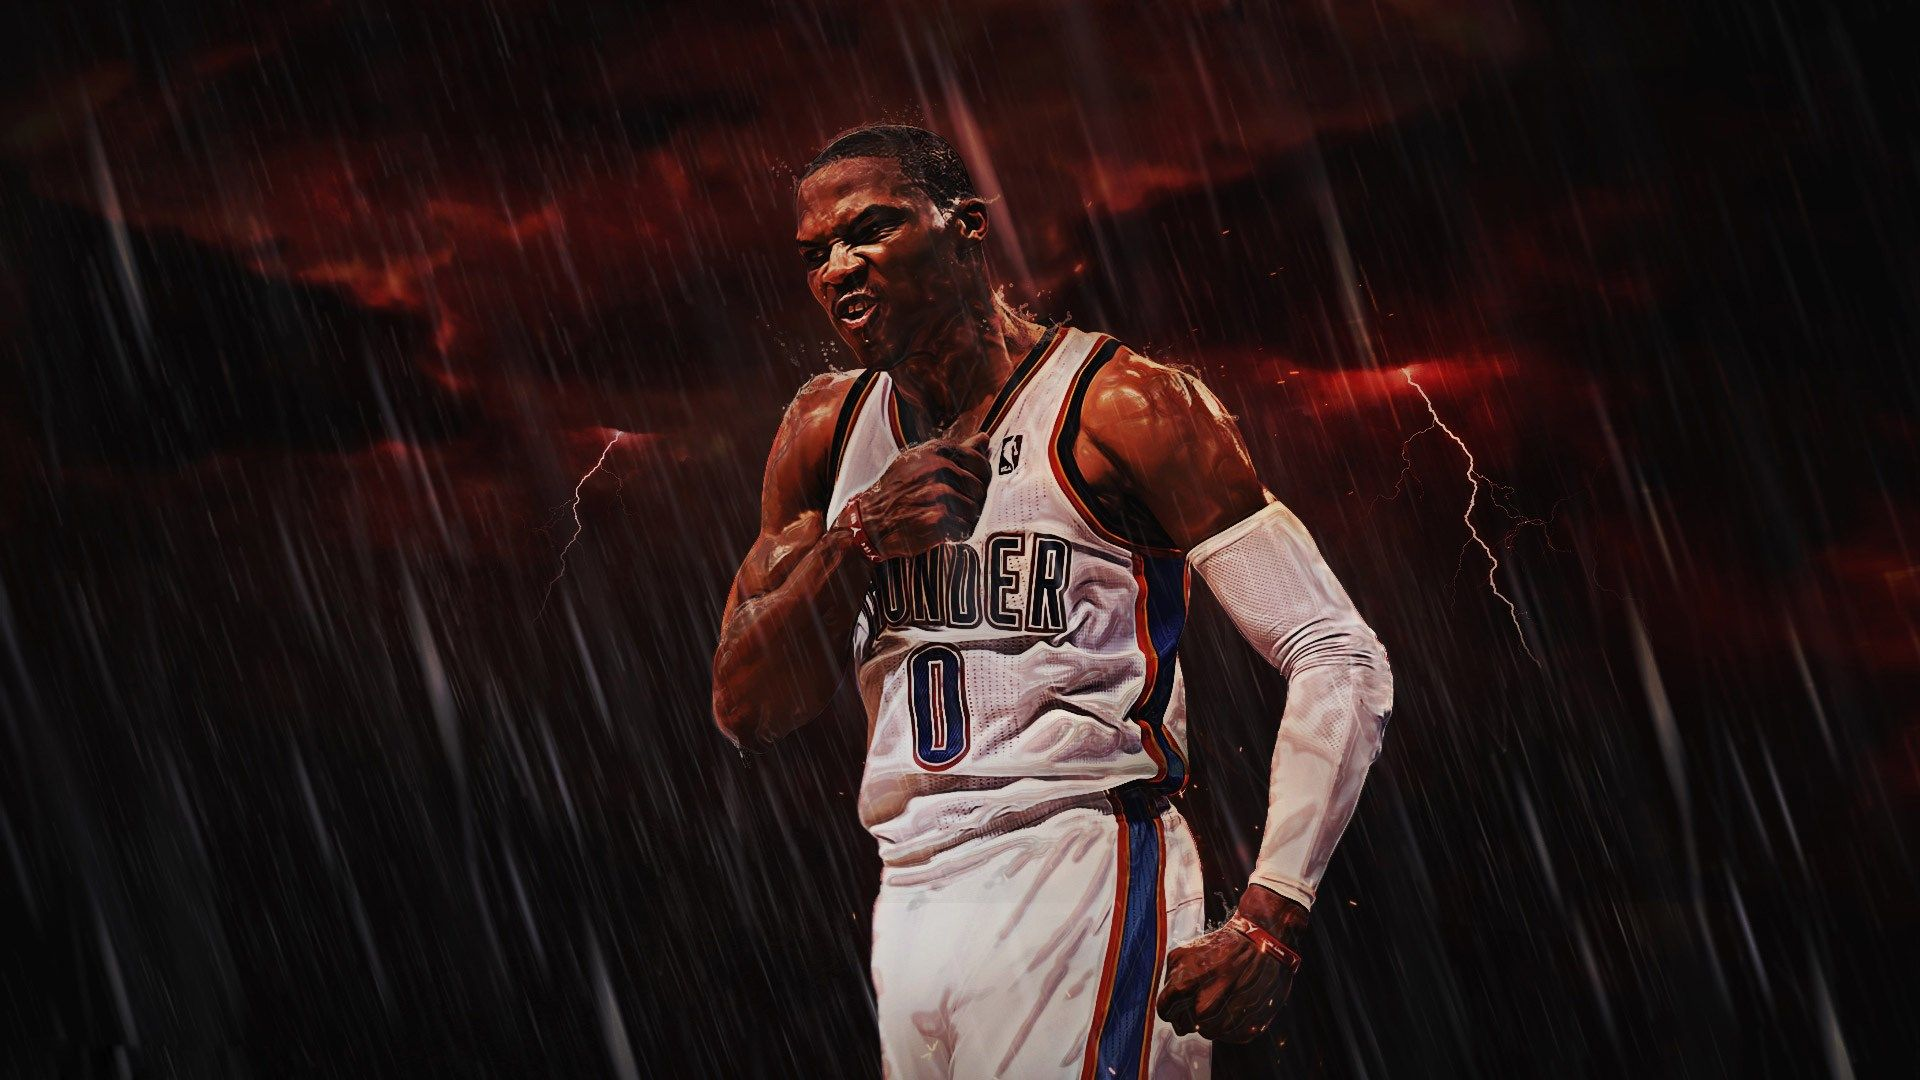 Russell Westbrook Wallpaper Hd Free Download Ololoshenka Russell